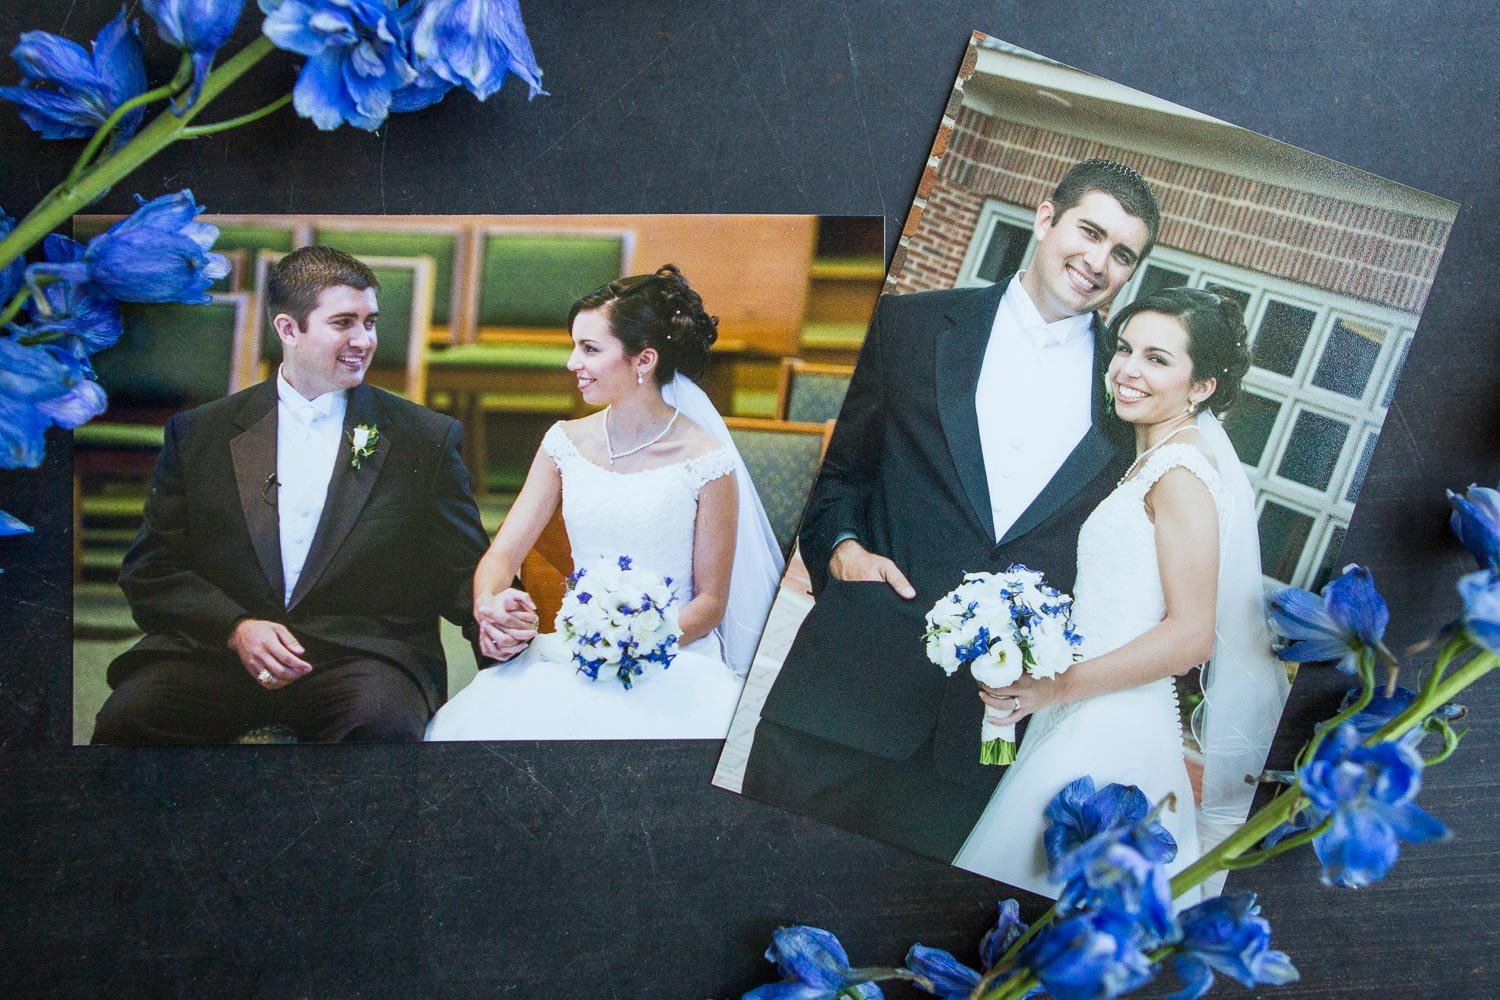 Brian and Rachel Goulet's wedding photos, featuring blue delphinium.